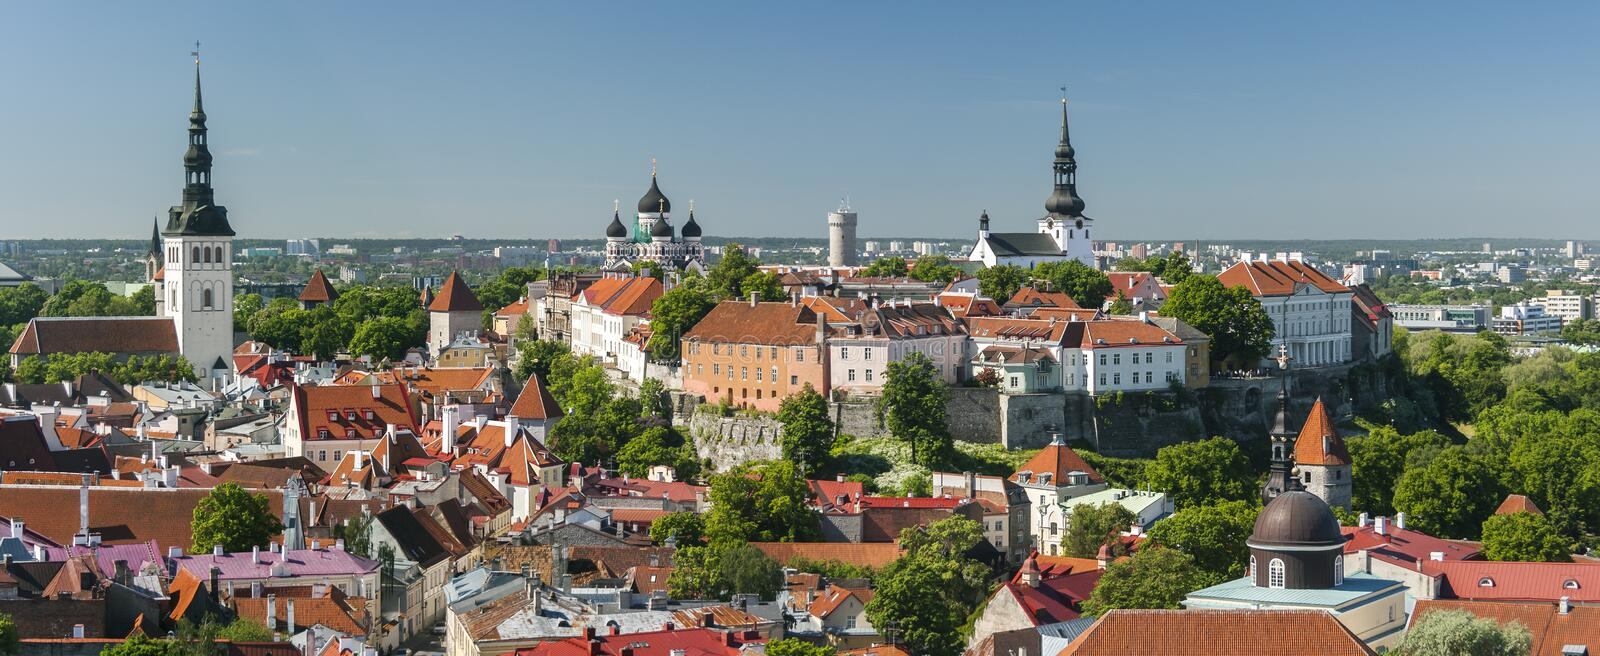 Download Summer Panorama Of The Old Town Of Tallinn,Estonia Stock Image - Image: 25612261